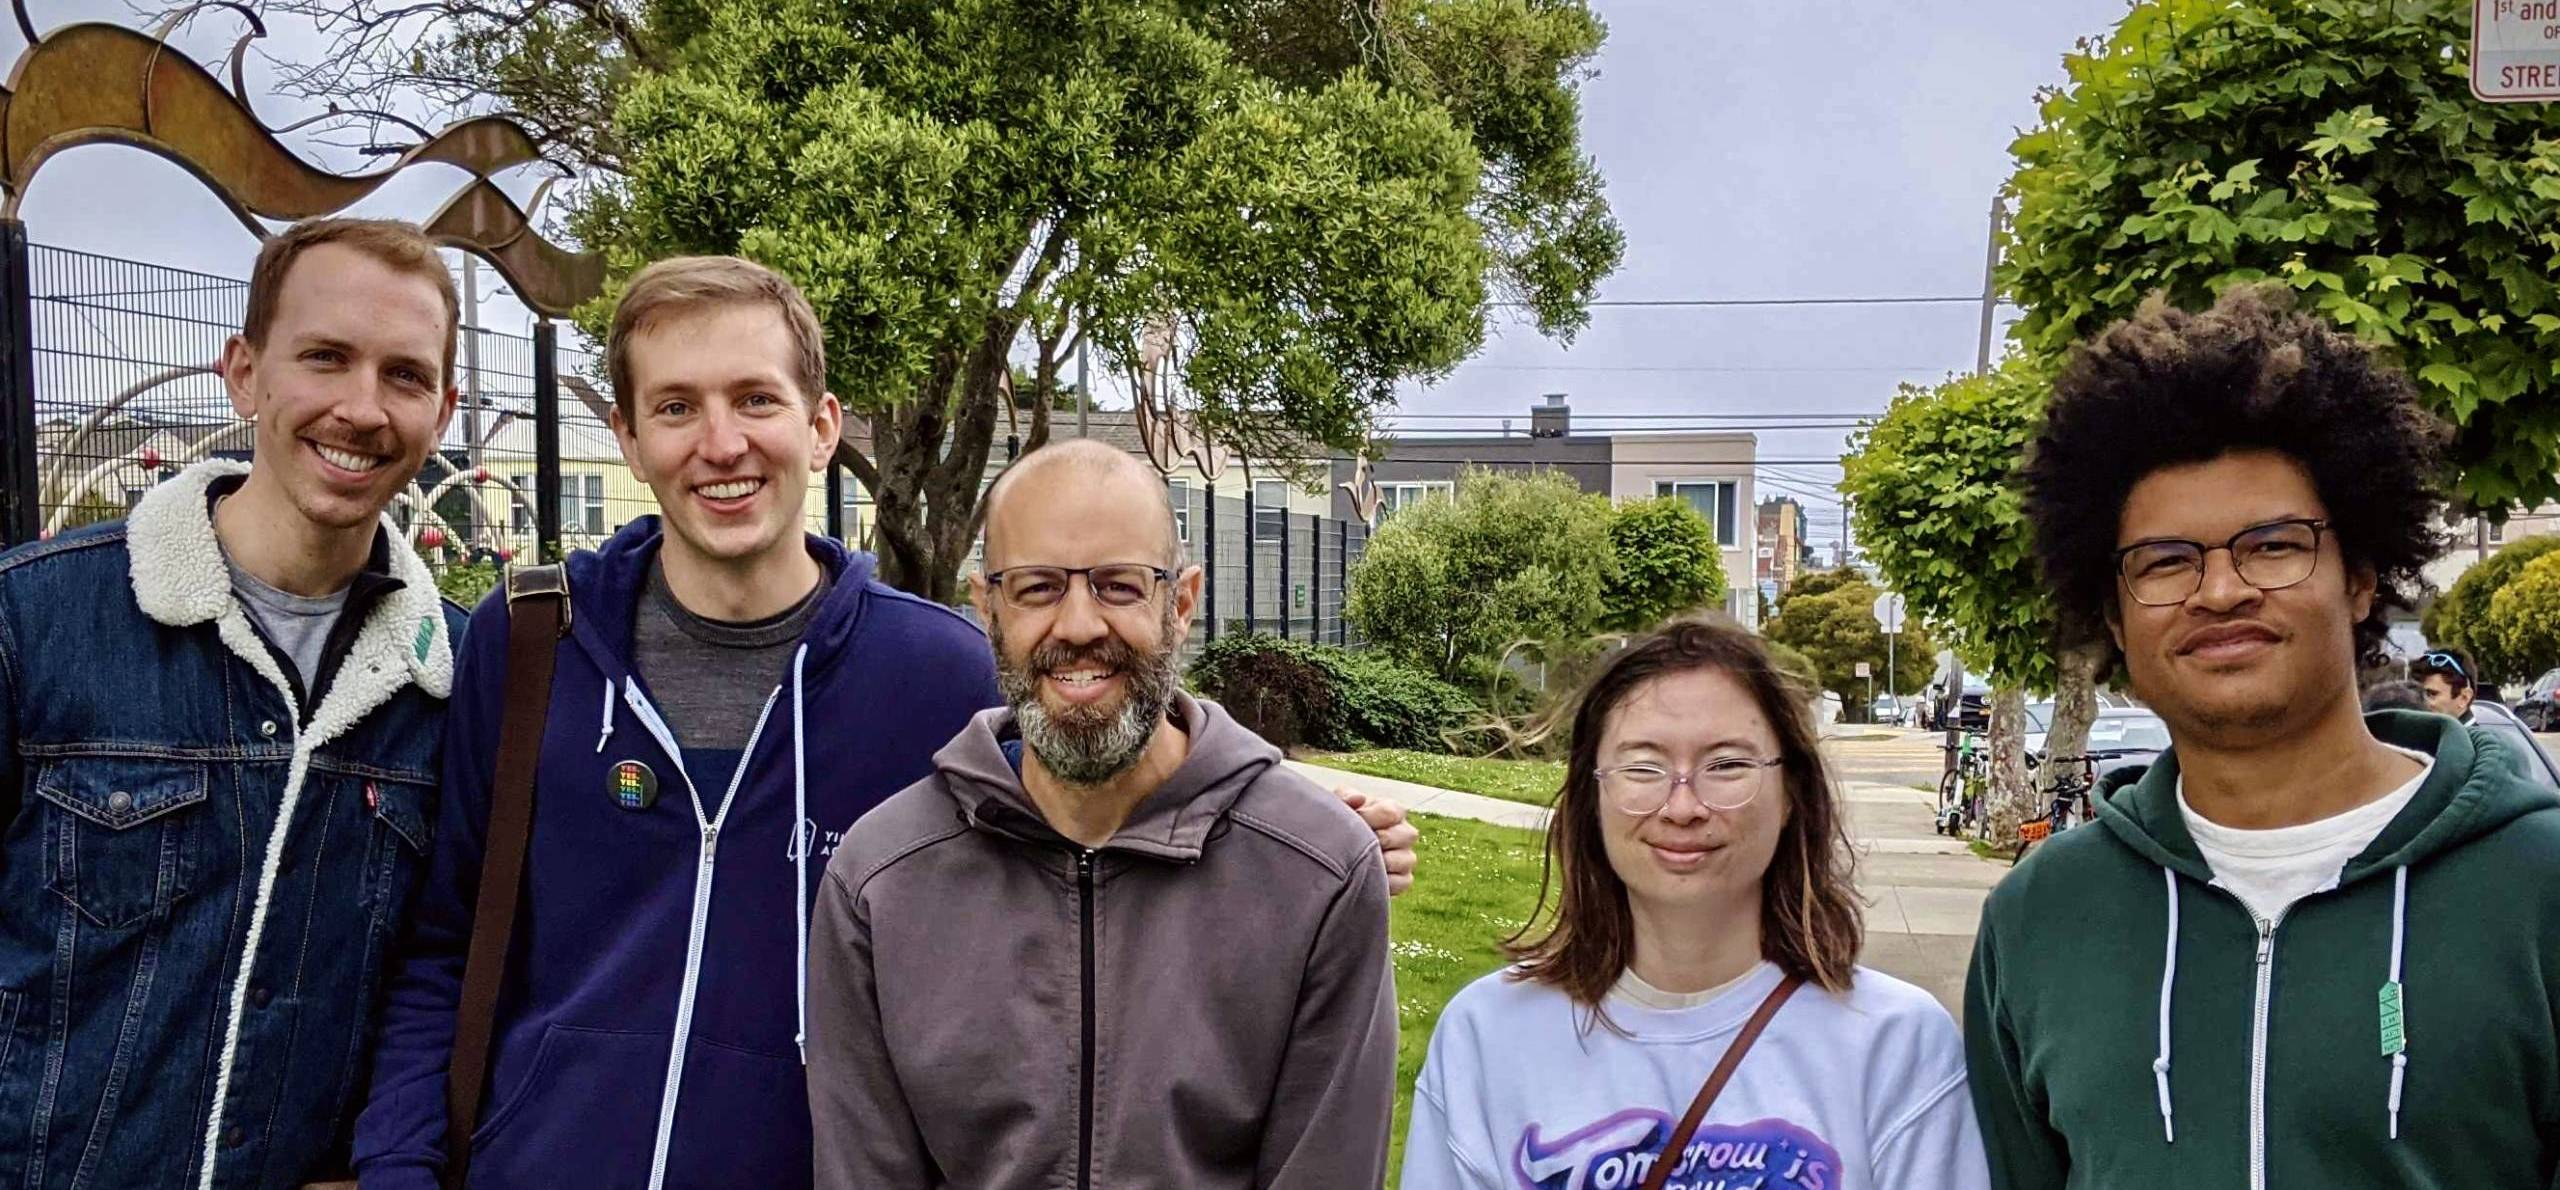 Five YIMBY housing activists standing next to each other for a group photo